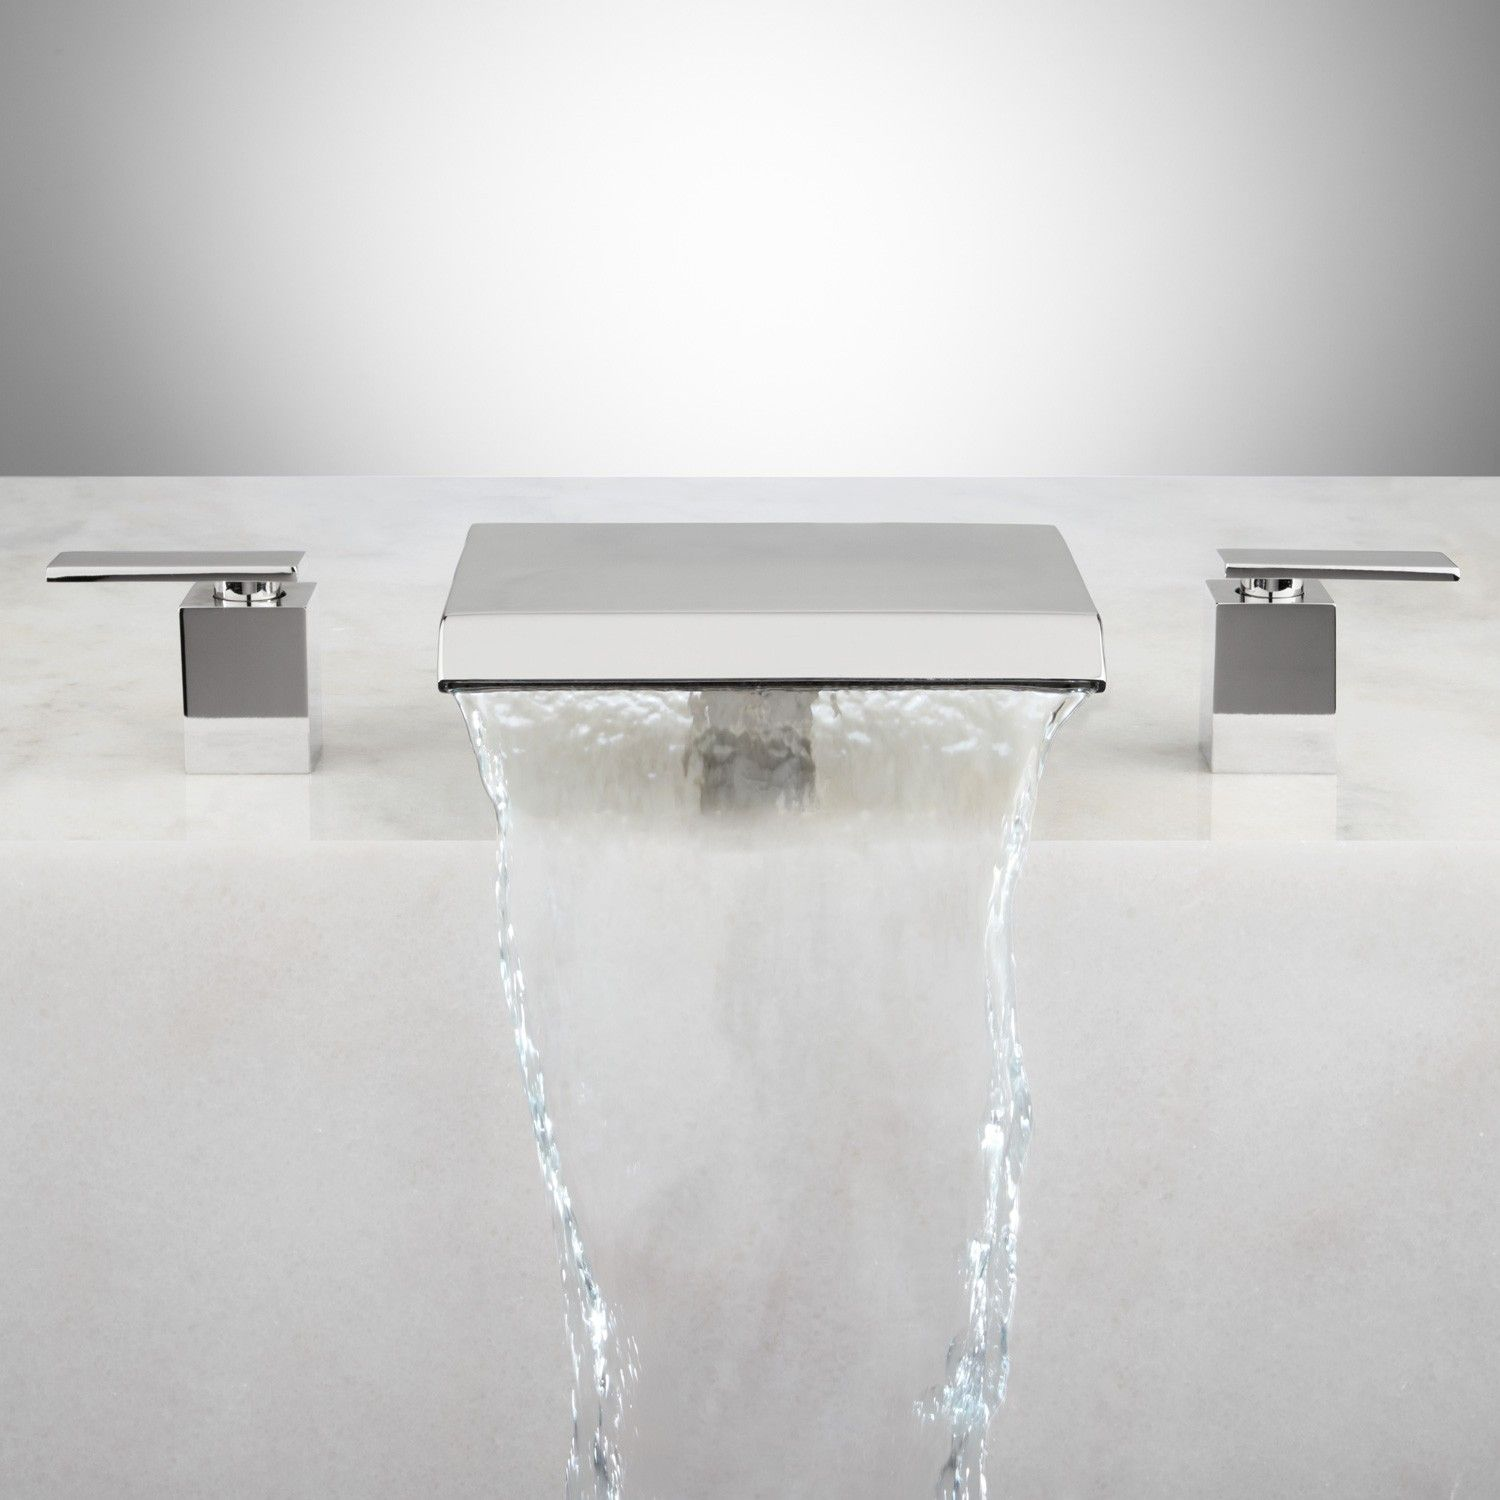 Attractive Roman Waterfall Tub Faucet Pattern - Faucet Products ...